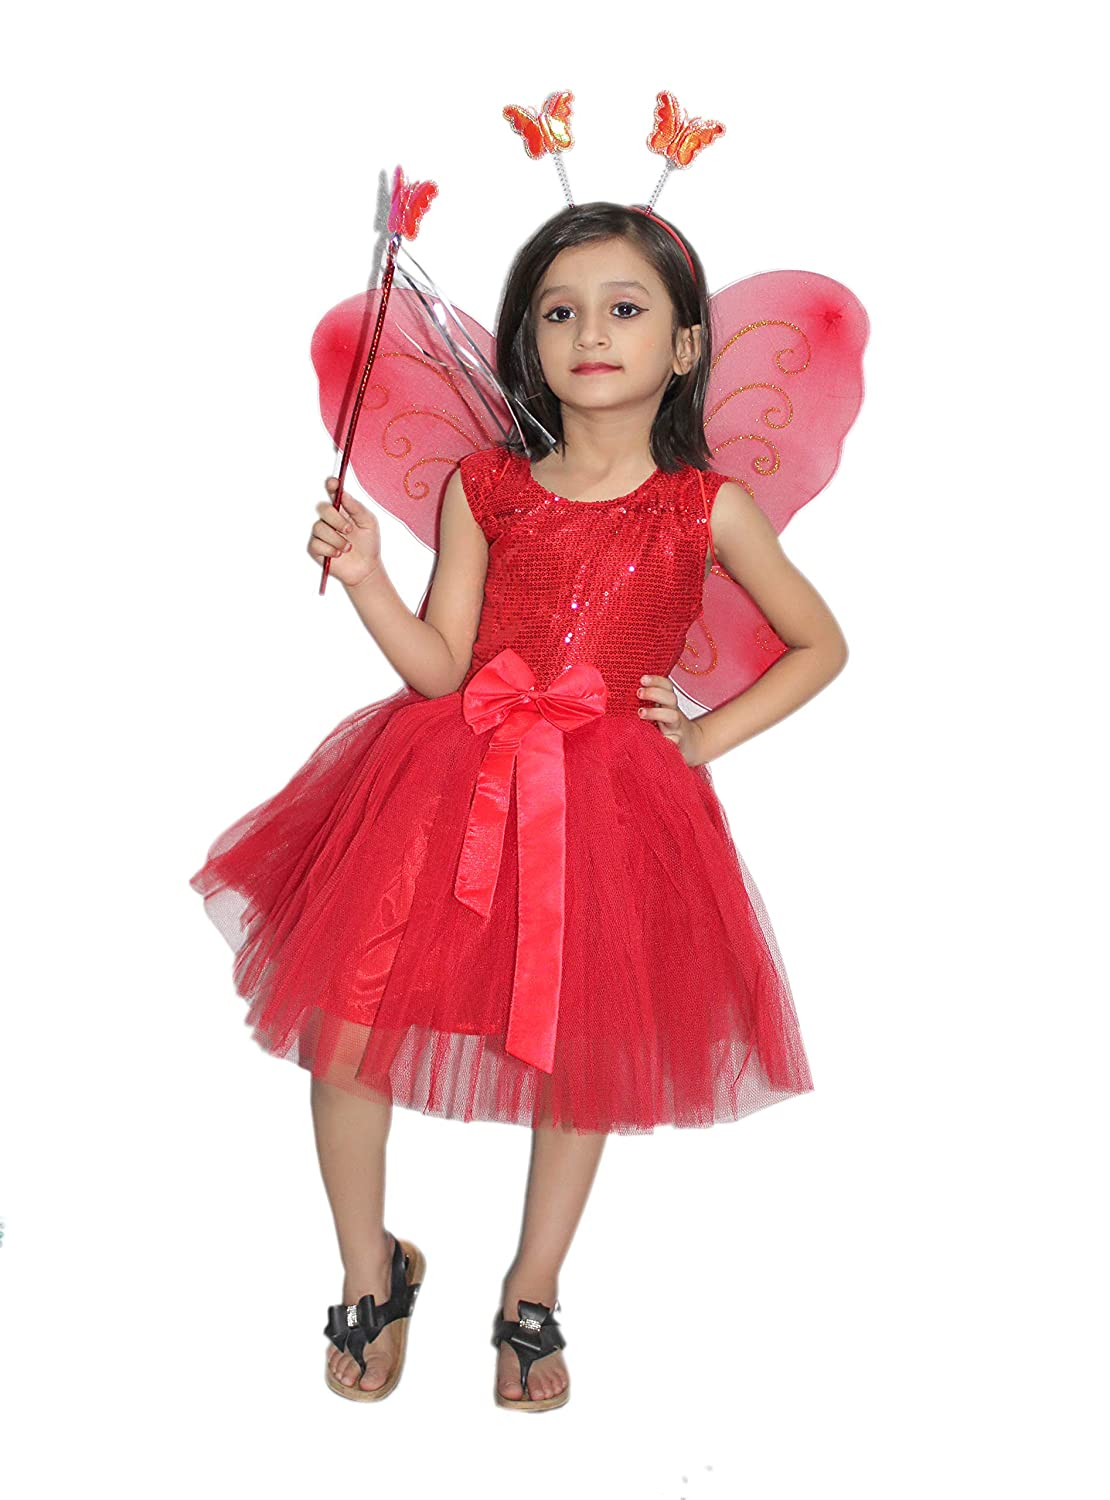 Kaku Fancy Dresses Red Butterfly Insect Costume -Red, 5-5 Years, for Girls